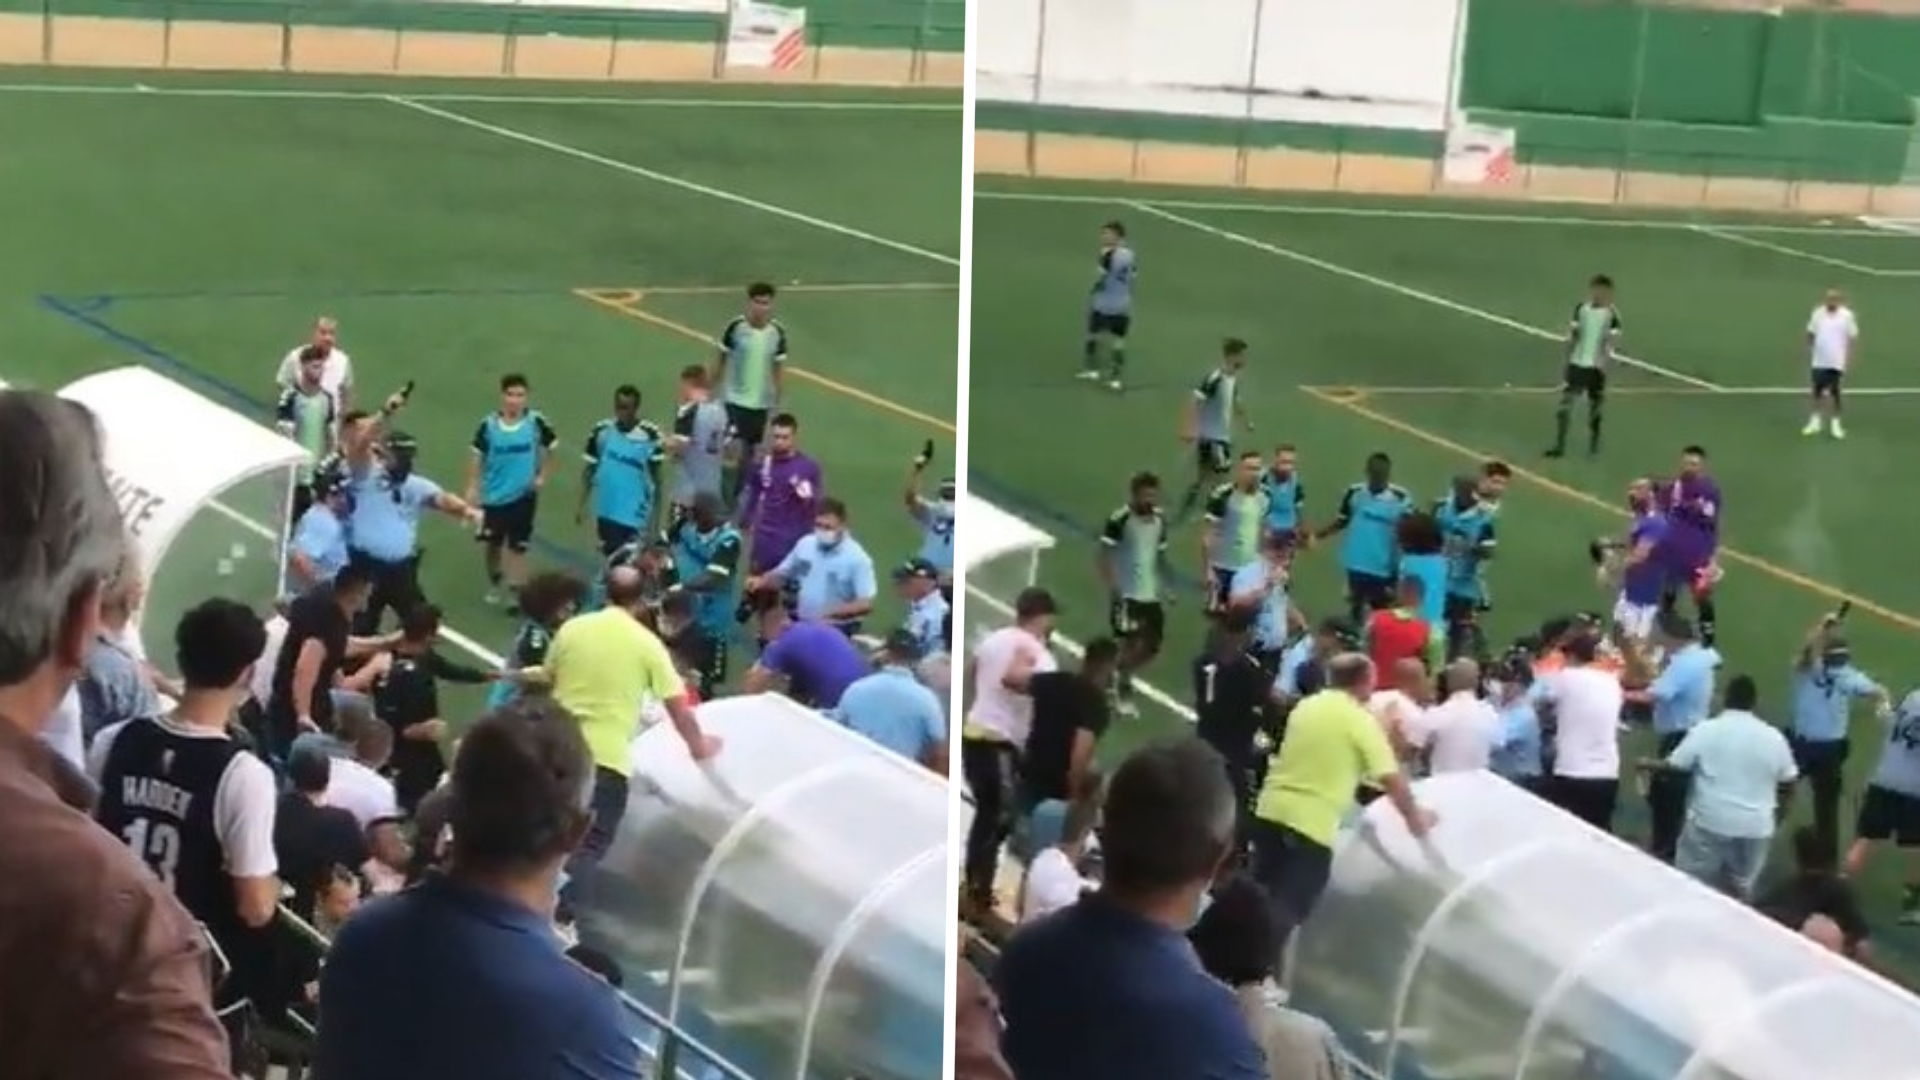 Gunshots fired in Portugal during post-match fight between players and fans